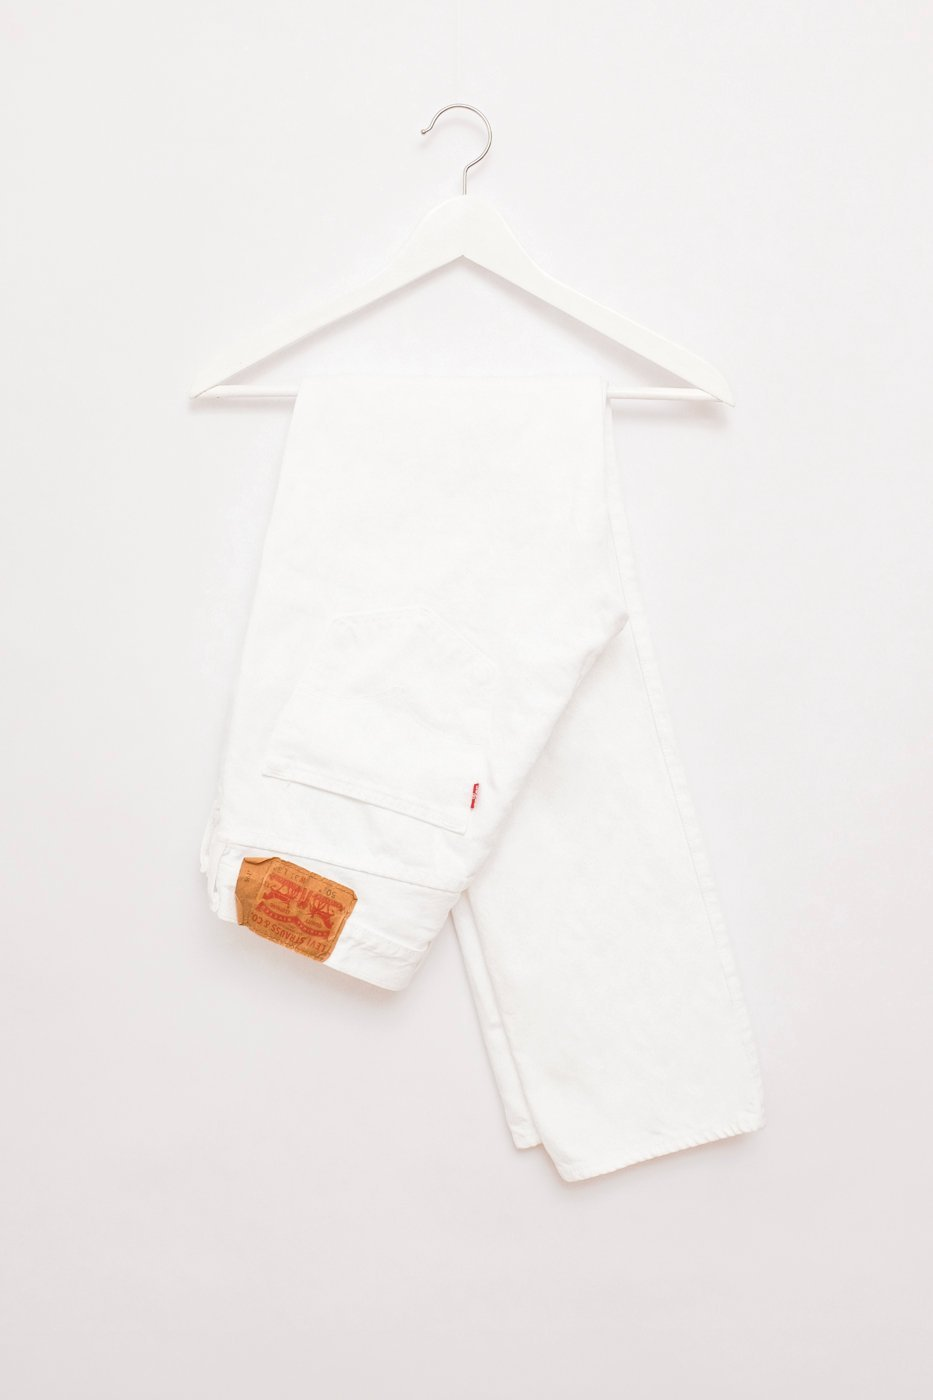 0458_WHITE LEVIS 501 CROP W30 MOM VINTAGE